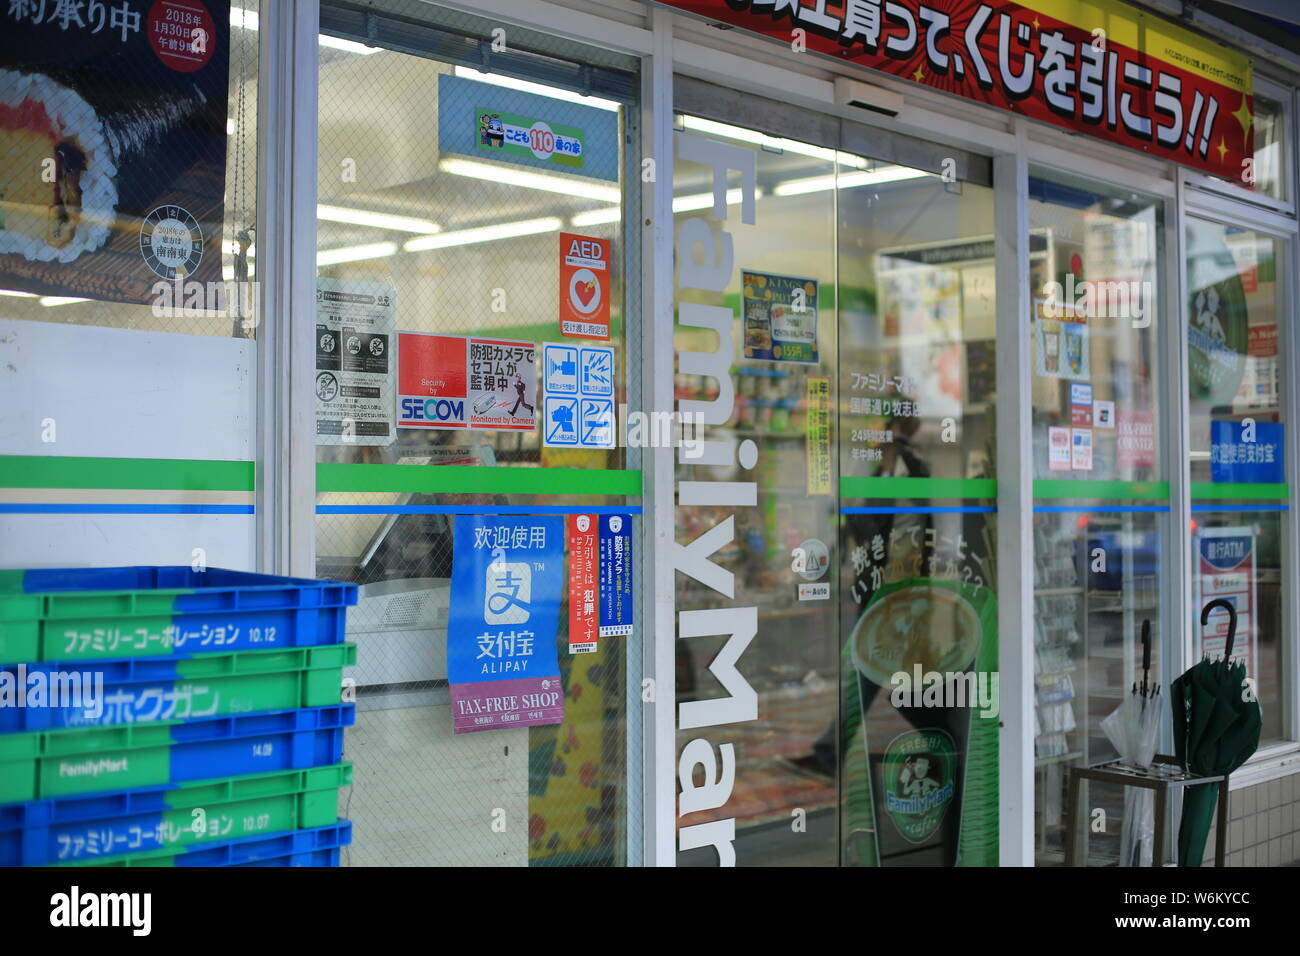 A signage of Alipay, the mobile payment service of Chinese e